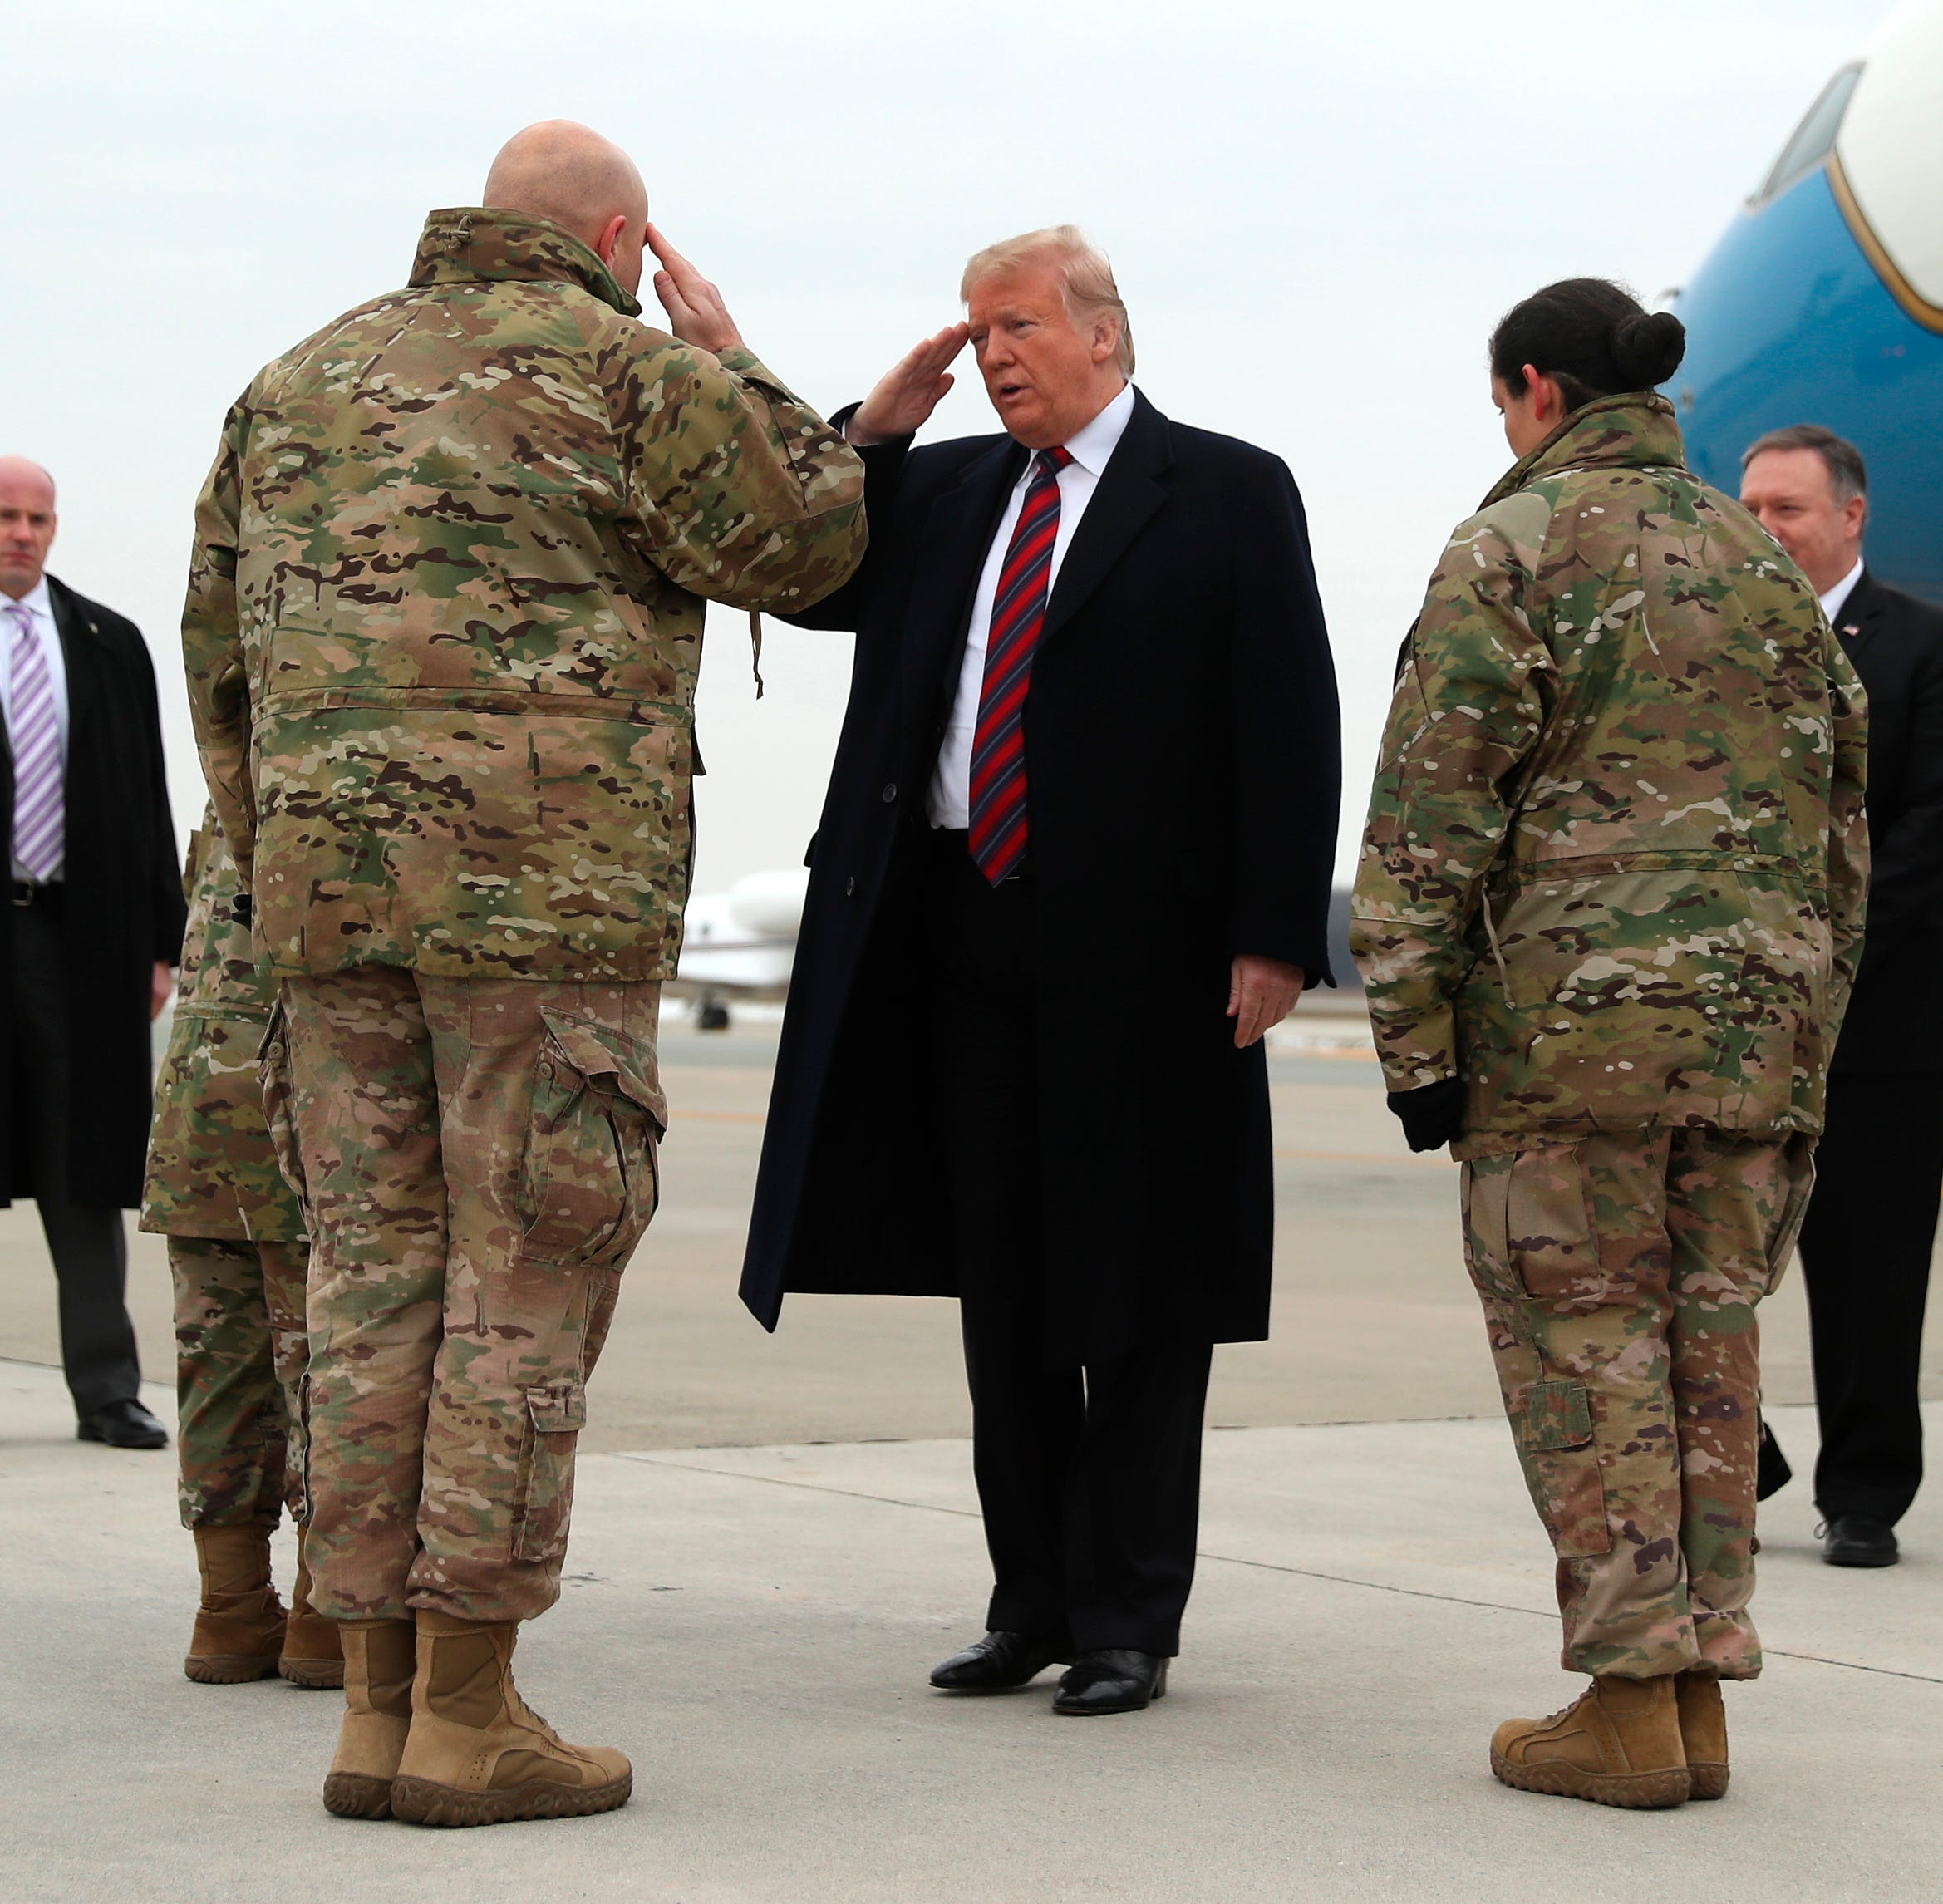 Trump headed to Dover Air Force Base to meet families of Americans killed in Syria